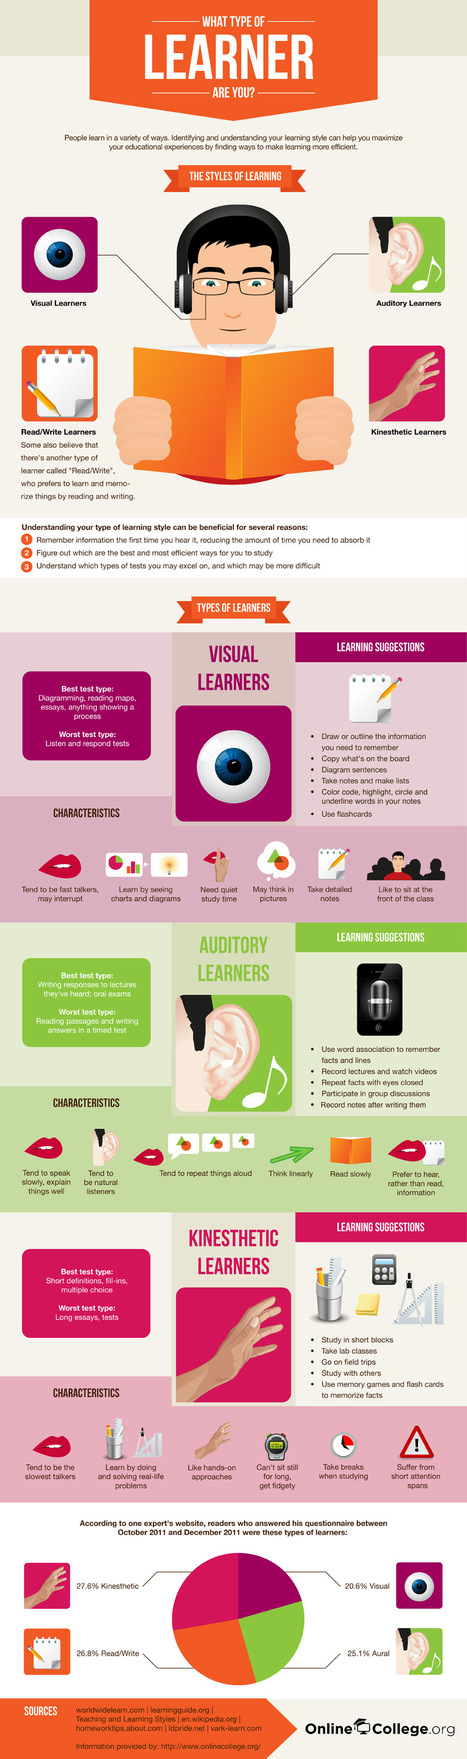 What Type of Learner Are You? [Infographic] | Kenya School Report - 21st Century Learning and Teaching | Scoop.it